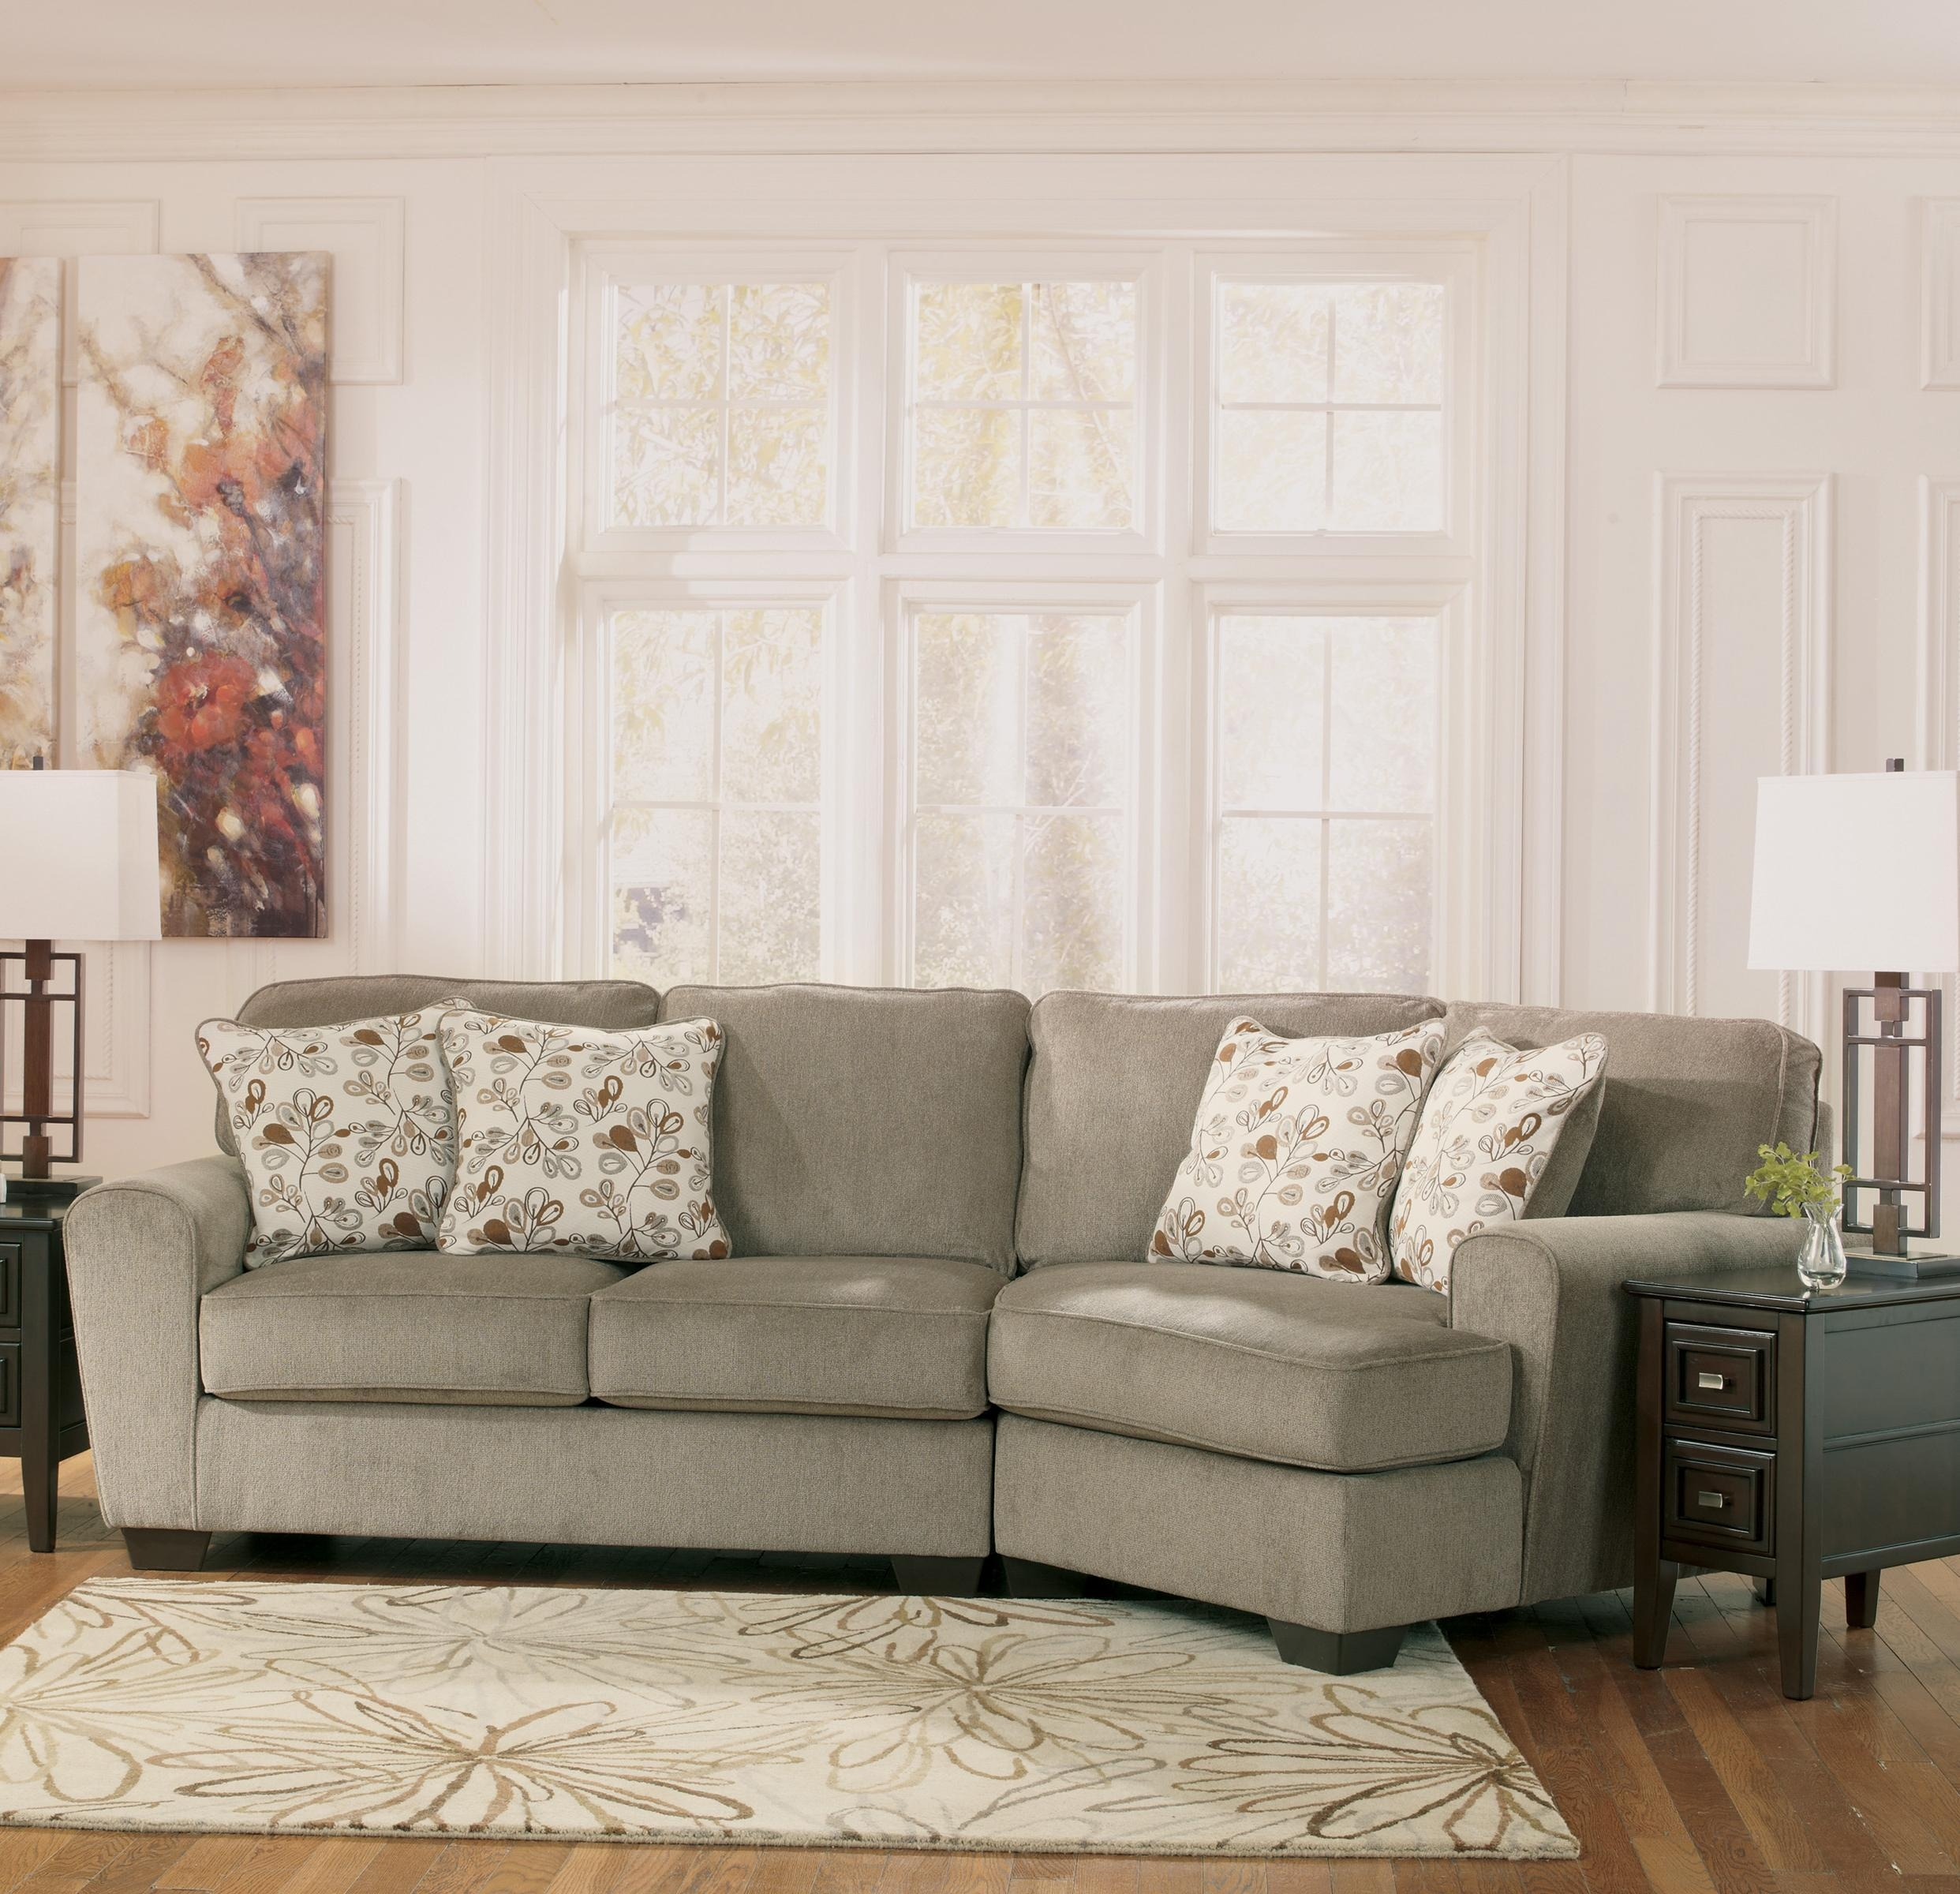 Ashley Furniture Patola Park – Patina 2 Piece Sectional With Right With Regard To Sectional Cuddler (View 11 of 20)